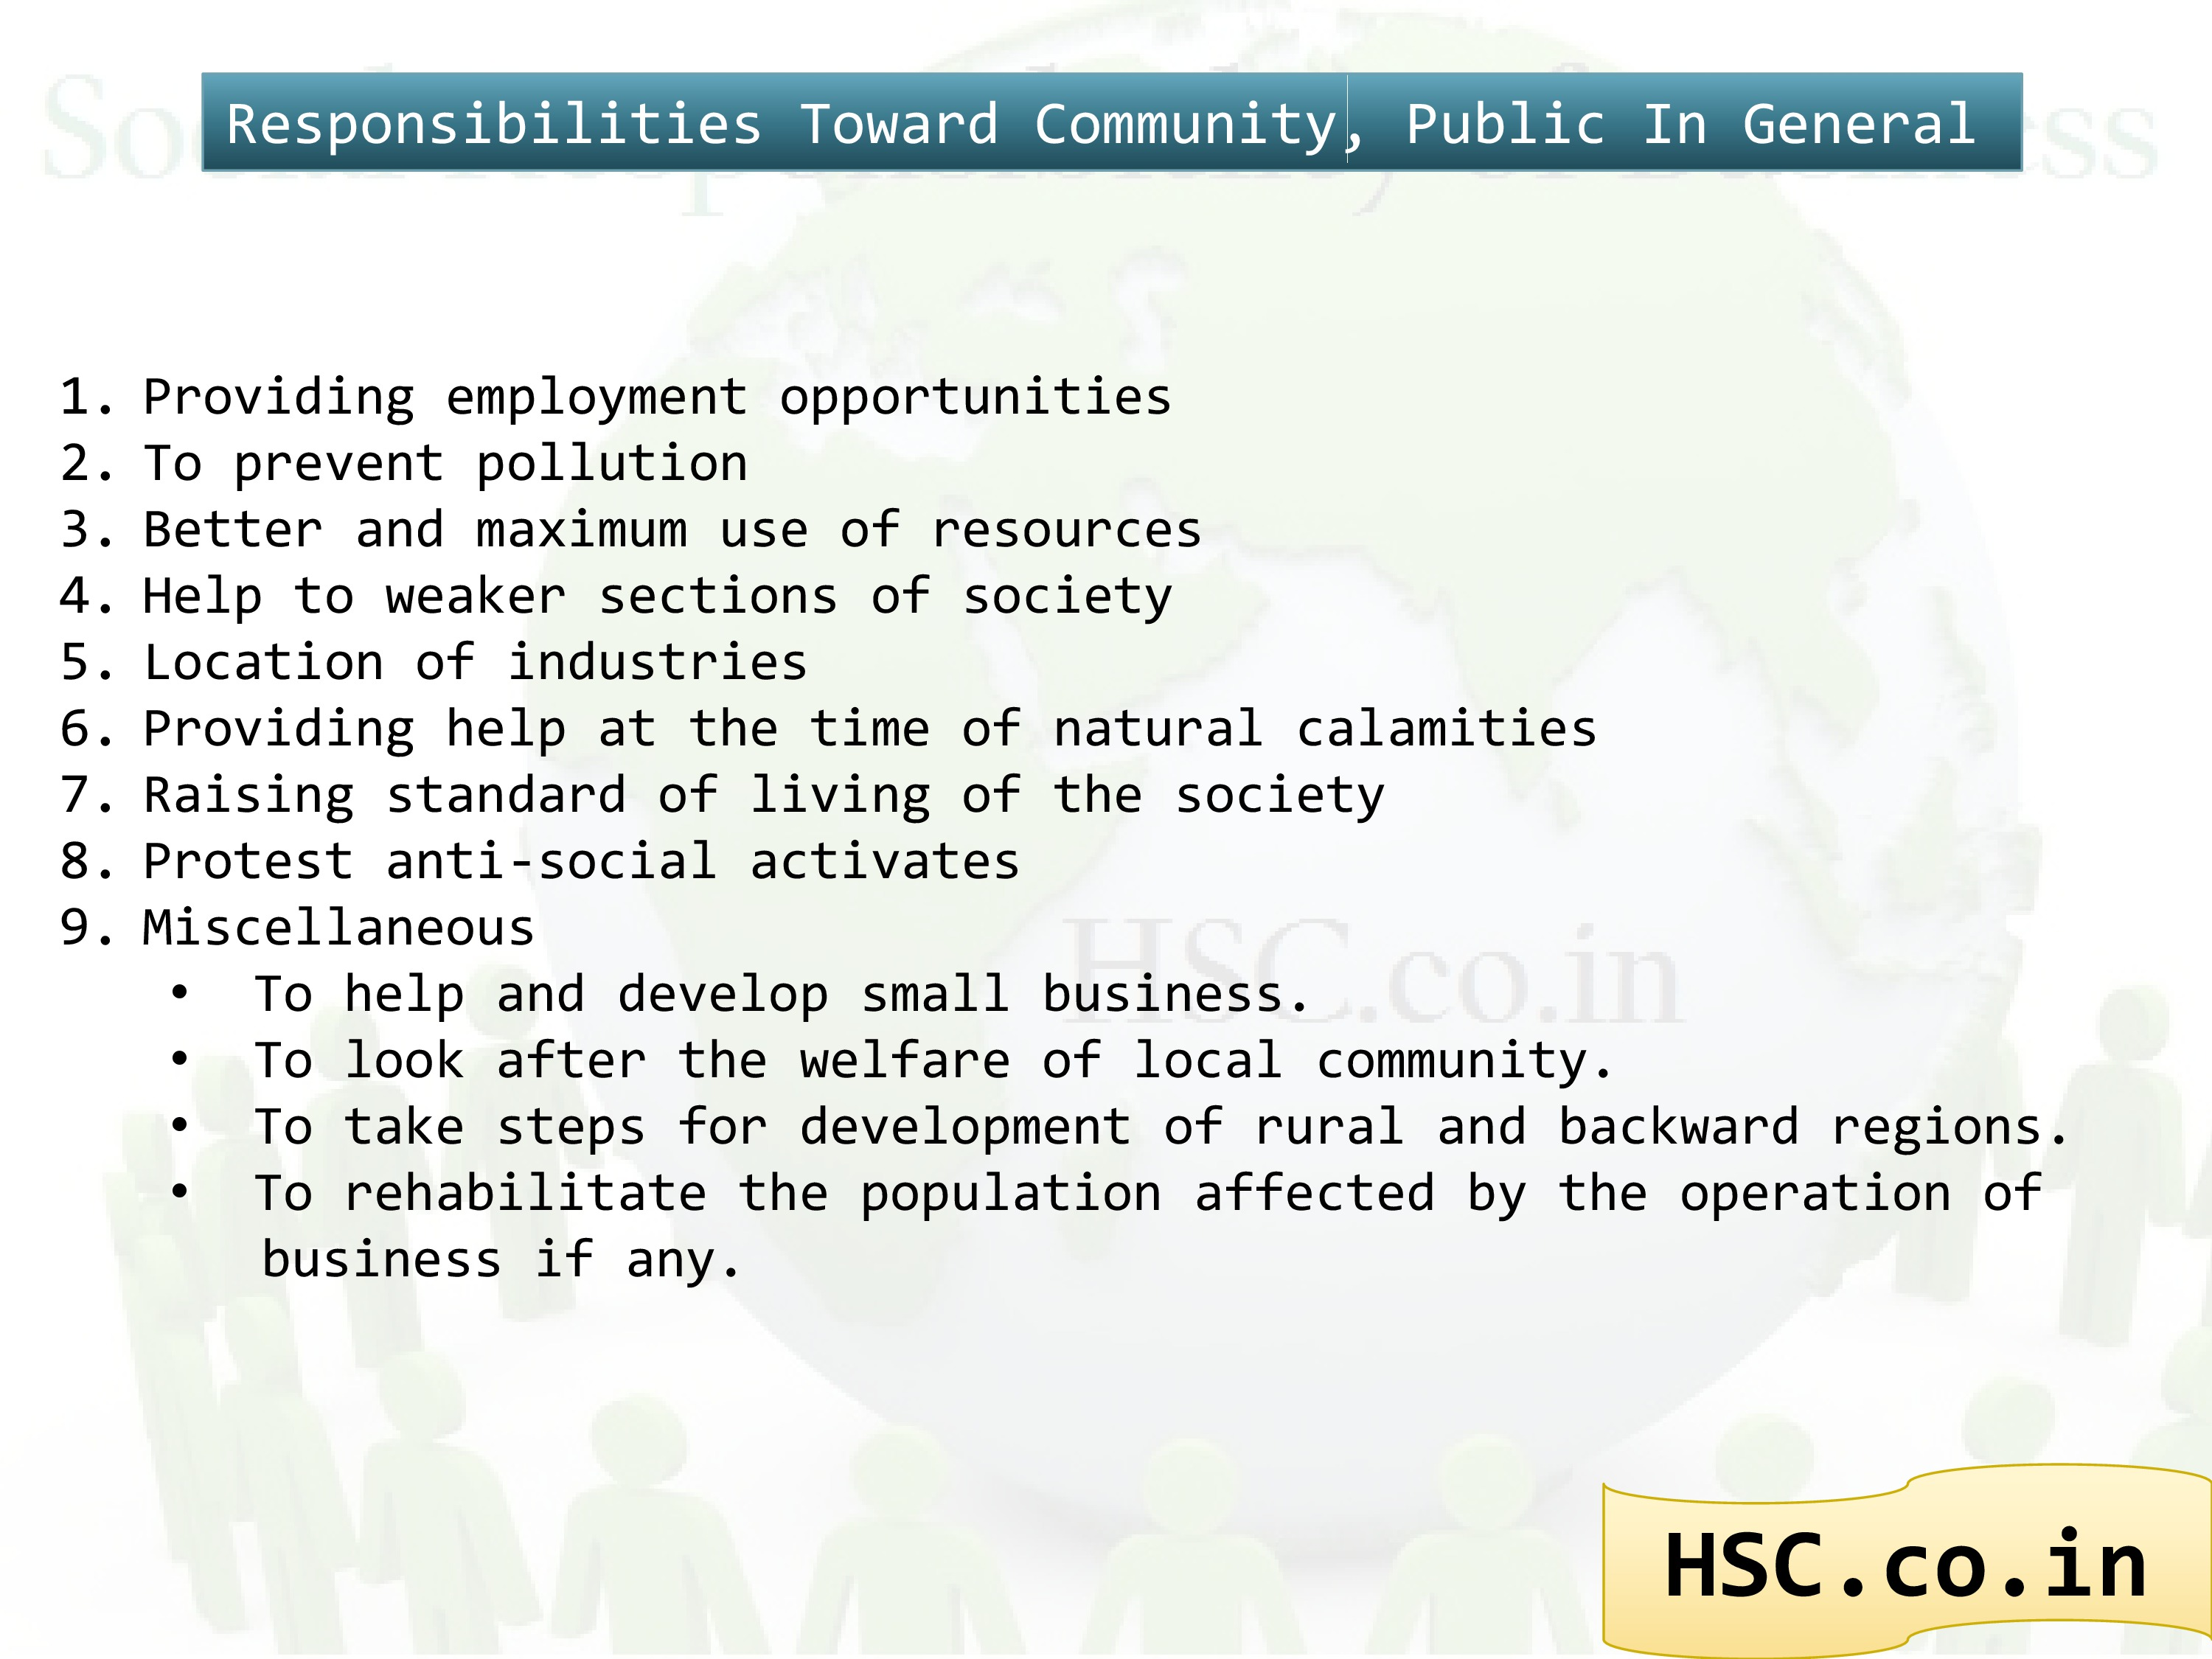 responsibility toward public in general and community